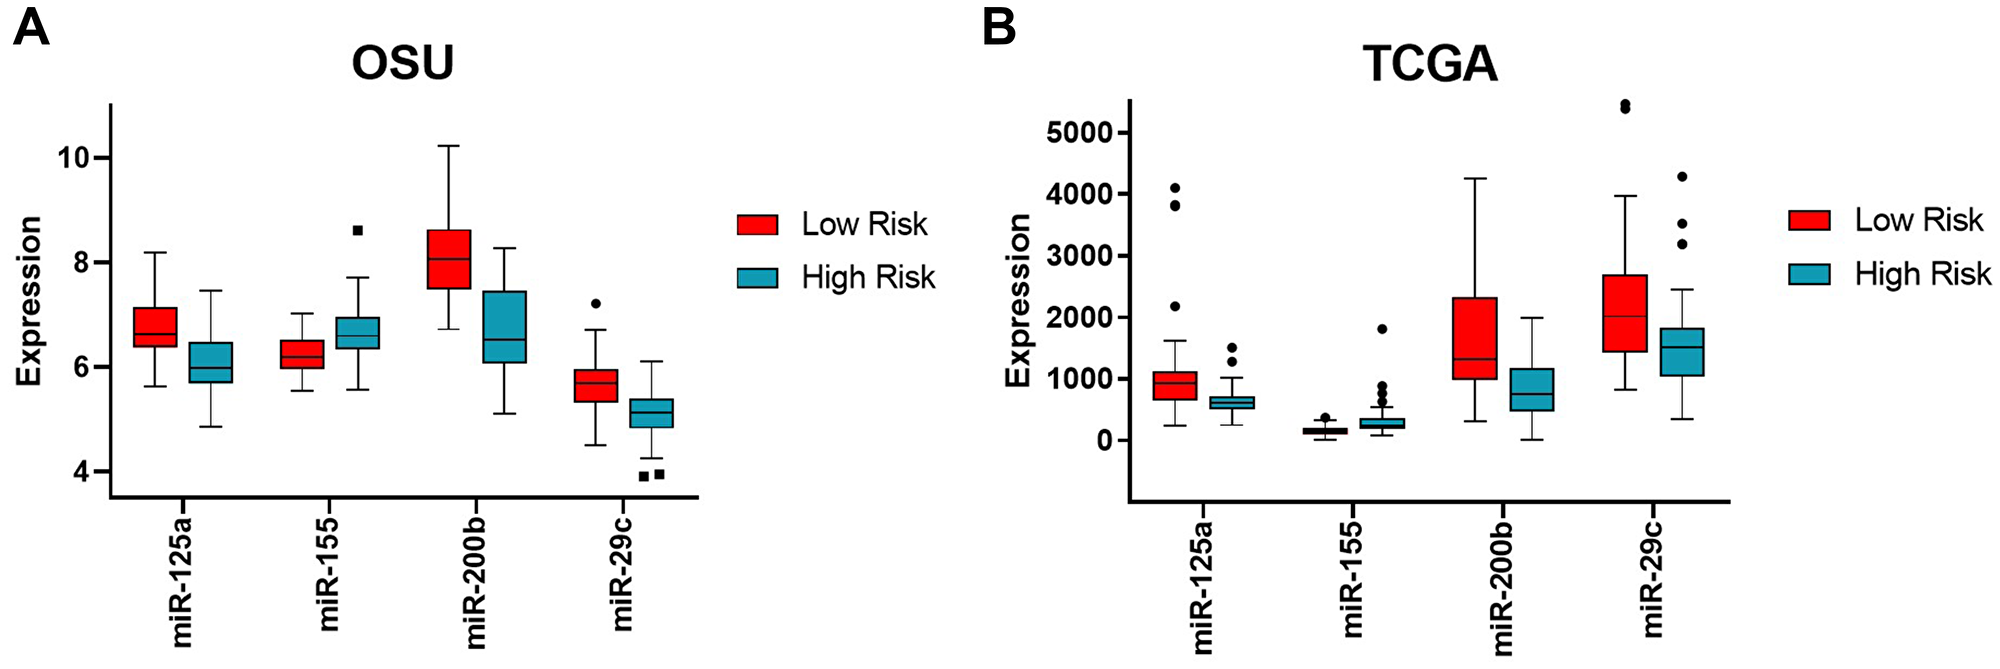 Expression levels of the four miRNAs in high versus low risk groups in the OSU and TCGA cohorts.